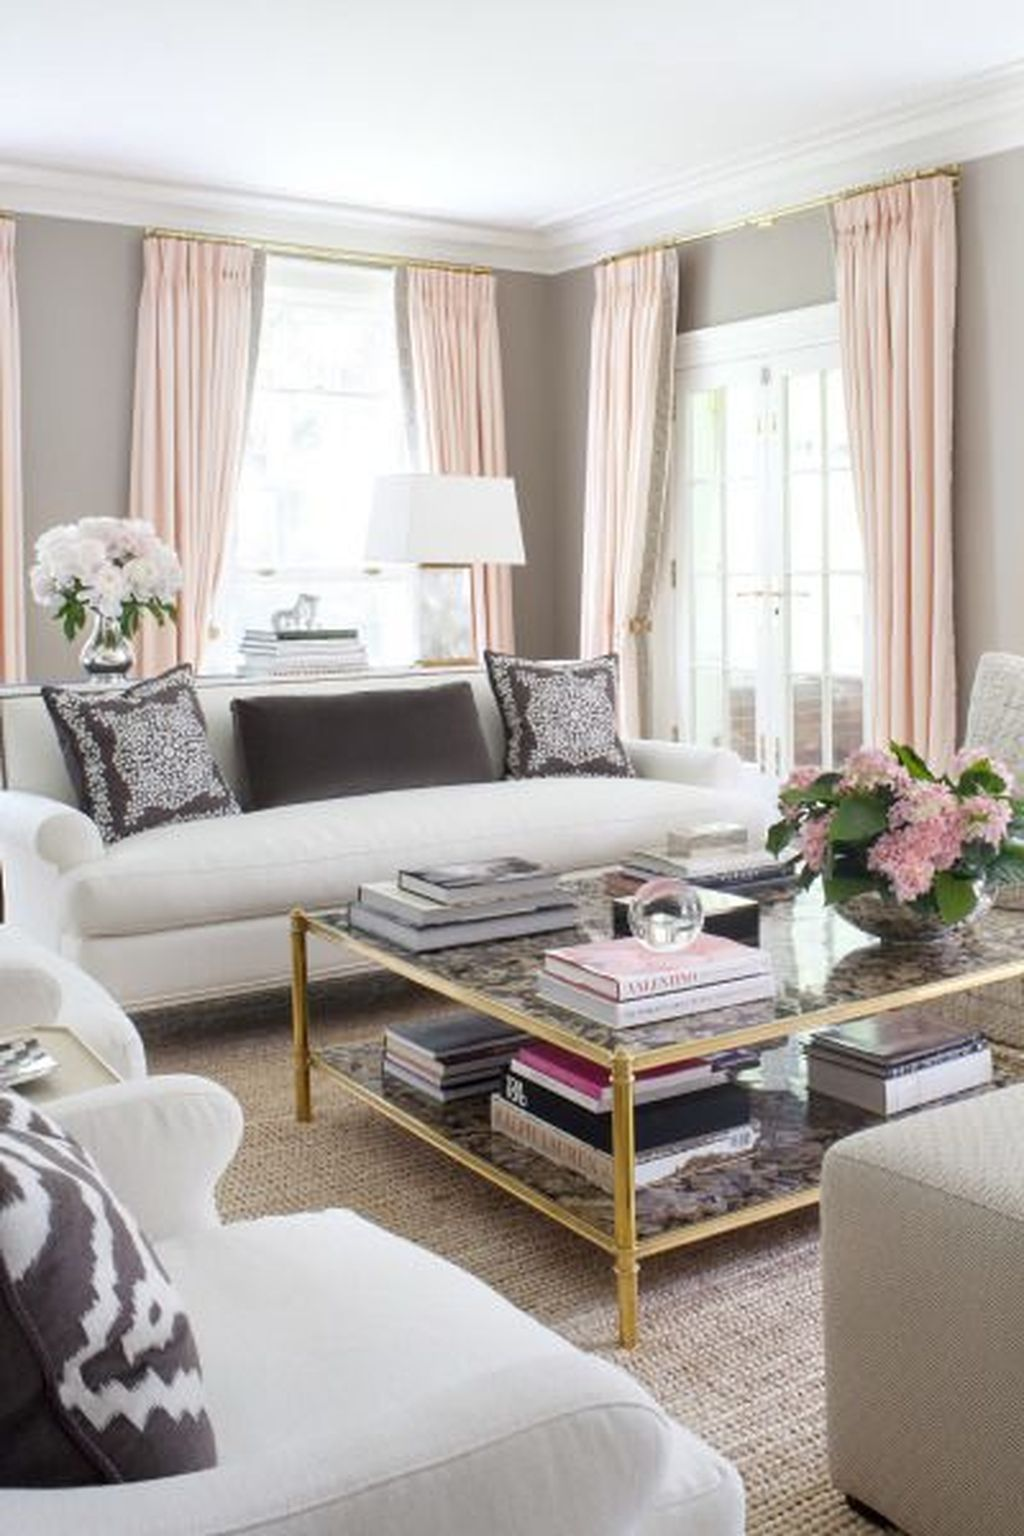 Affordable Grey And Cream Living Room D Eacute Cor Ideas Living Room Colors Feminine Living Room Curtains Living Room